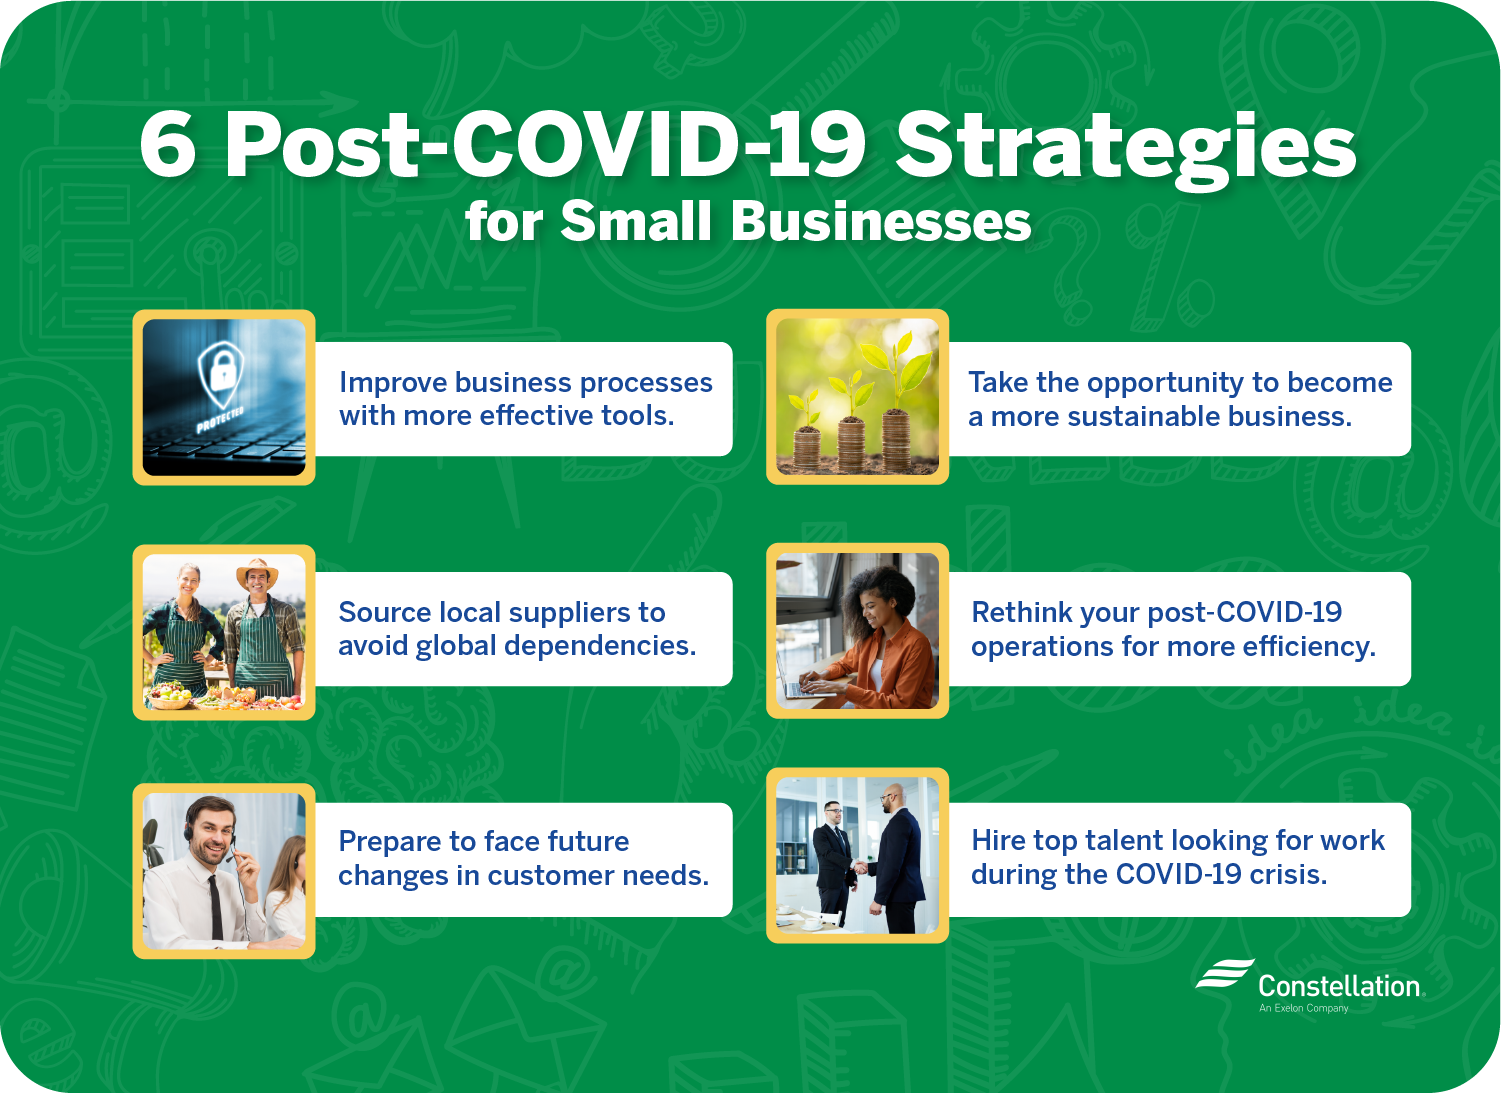 6 post-COVID-19 strategies for small businesses